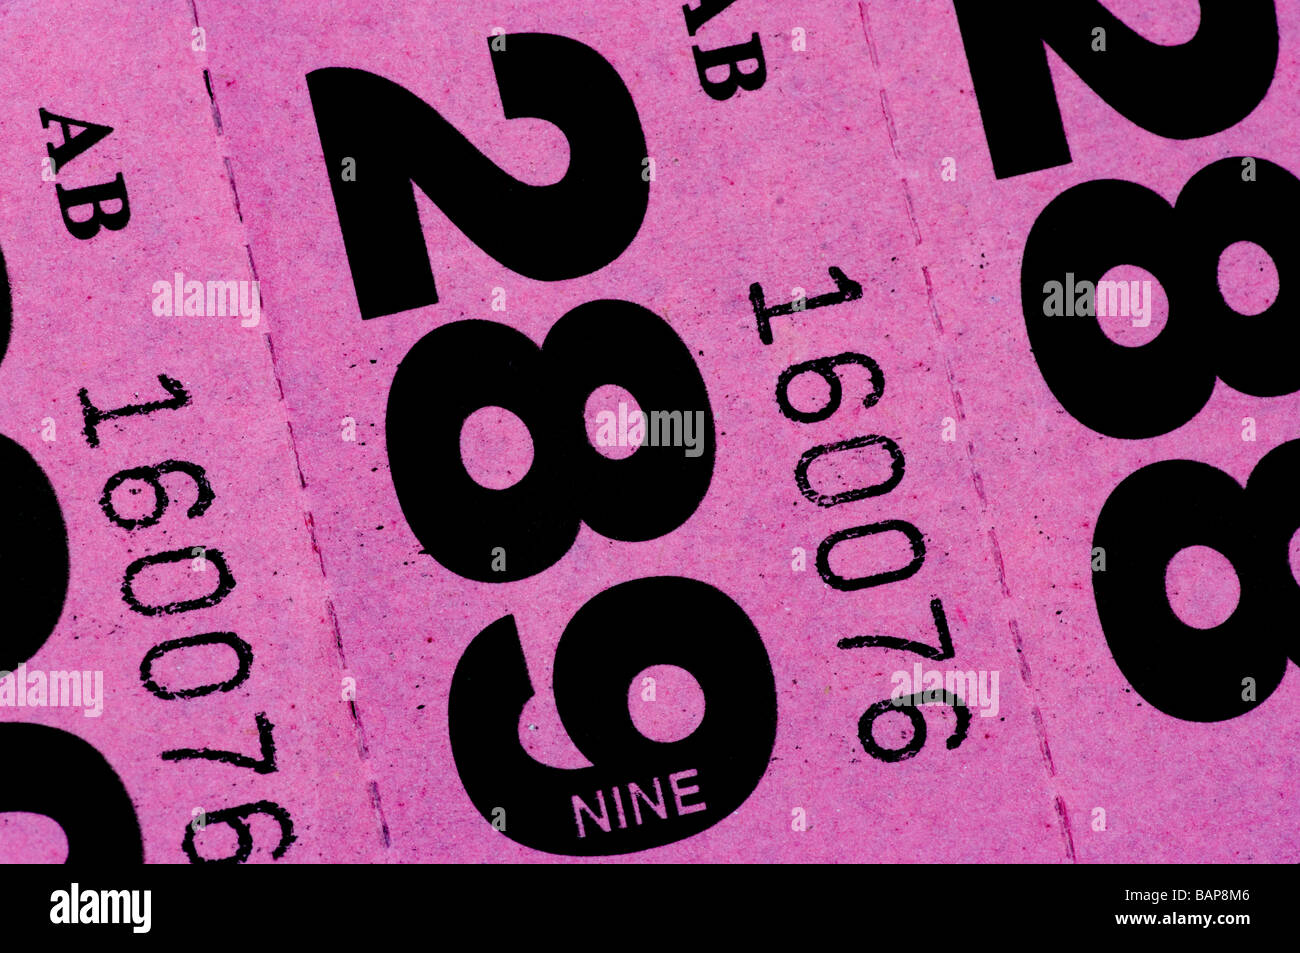 raffle tickets stock photos raffle tickets stock images alamy pink raffle tickets cloakroom ticket stock image